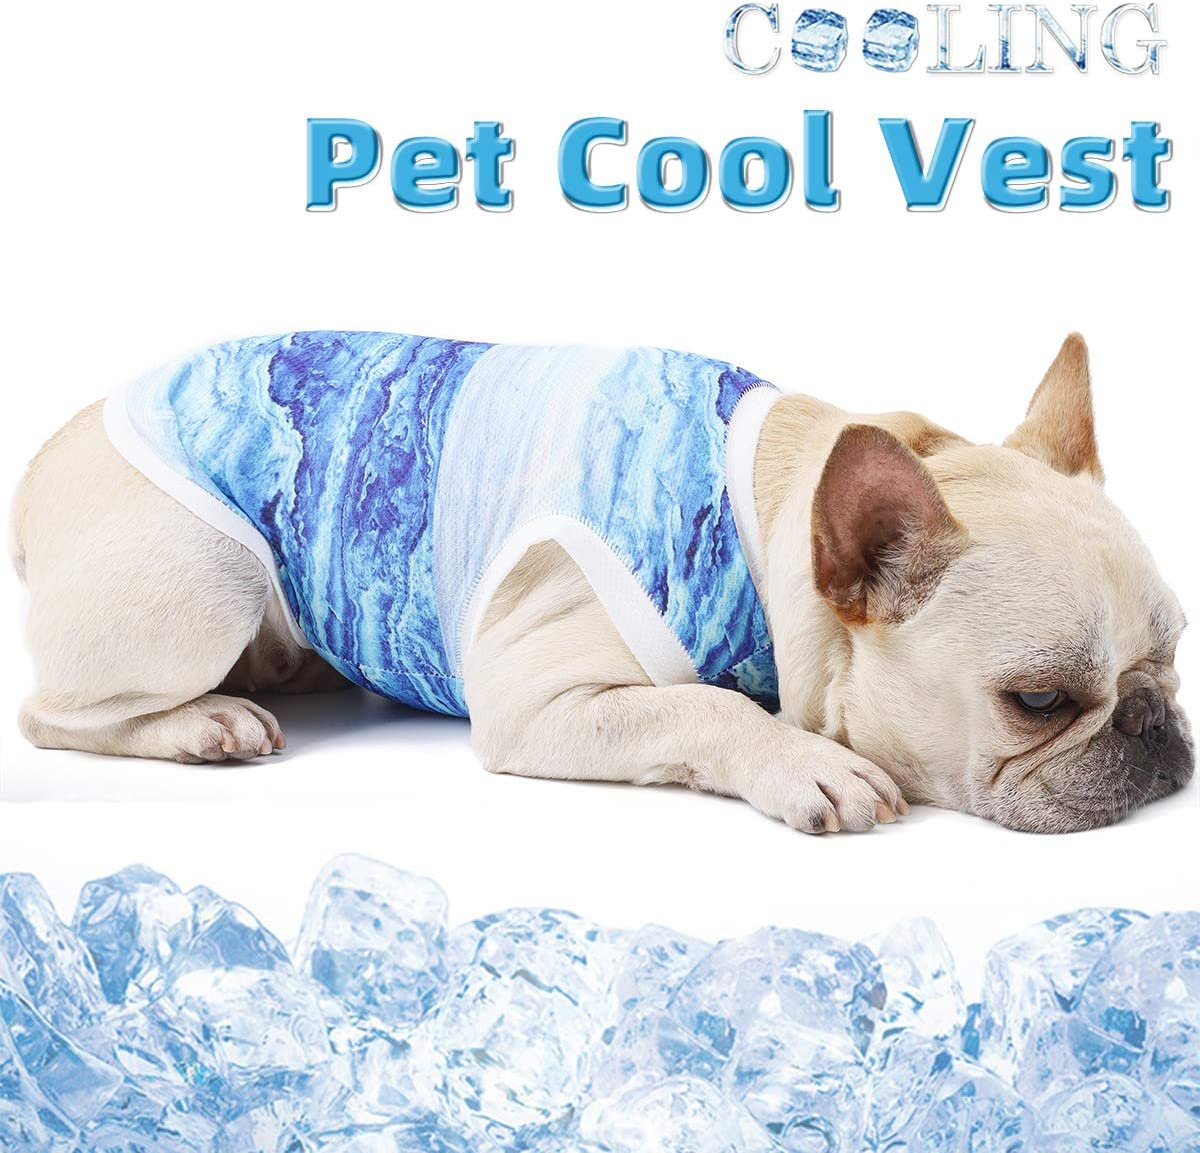 PUMYPOREITY Dog Cooling Vest T-Shirt, Instant Cooling Pet Clothes, Soft Breathable Hot Summer Tank Top Cloth for Dog Cat Puppy Bulldog, Cooling Ice Vest for Walking Exercise Hiking